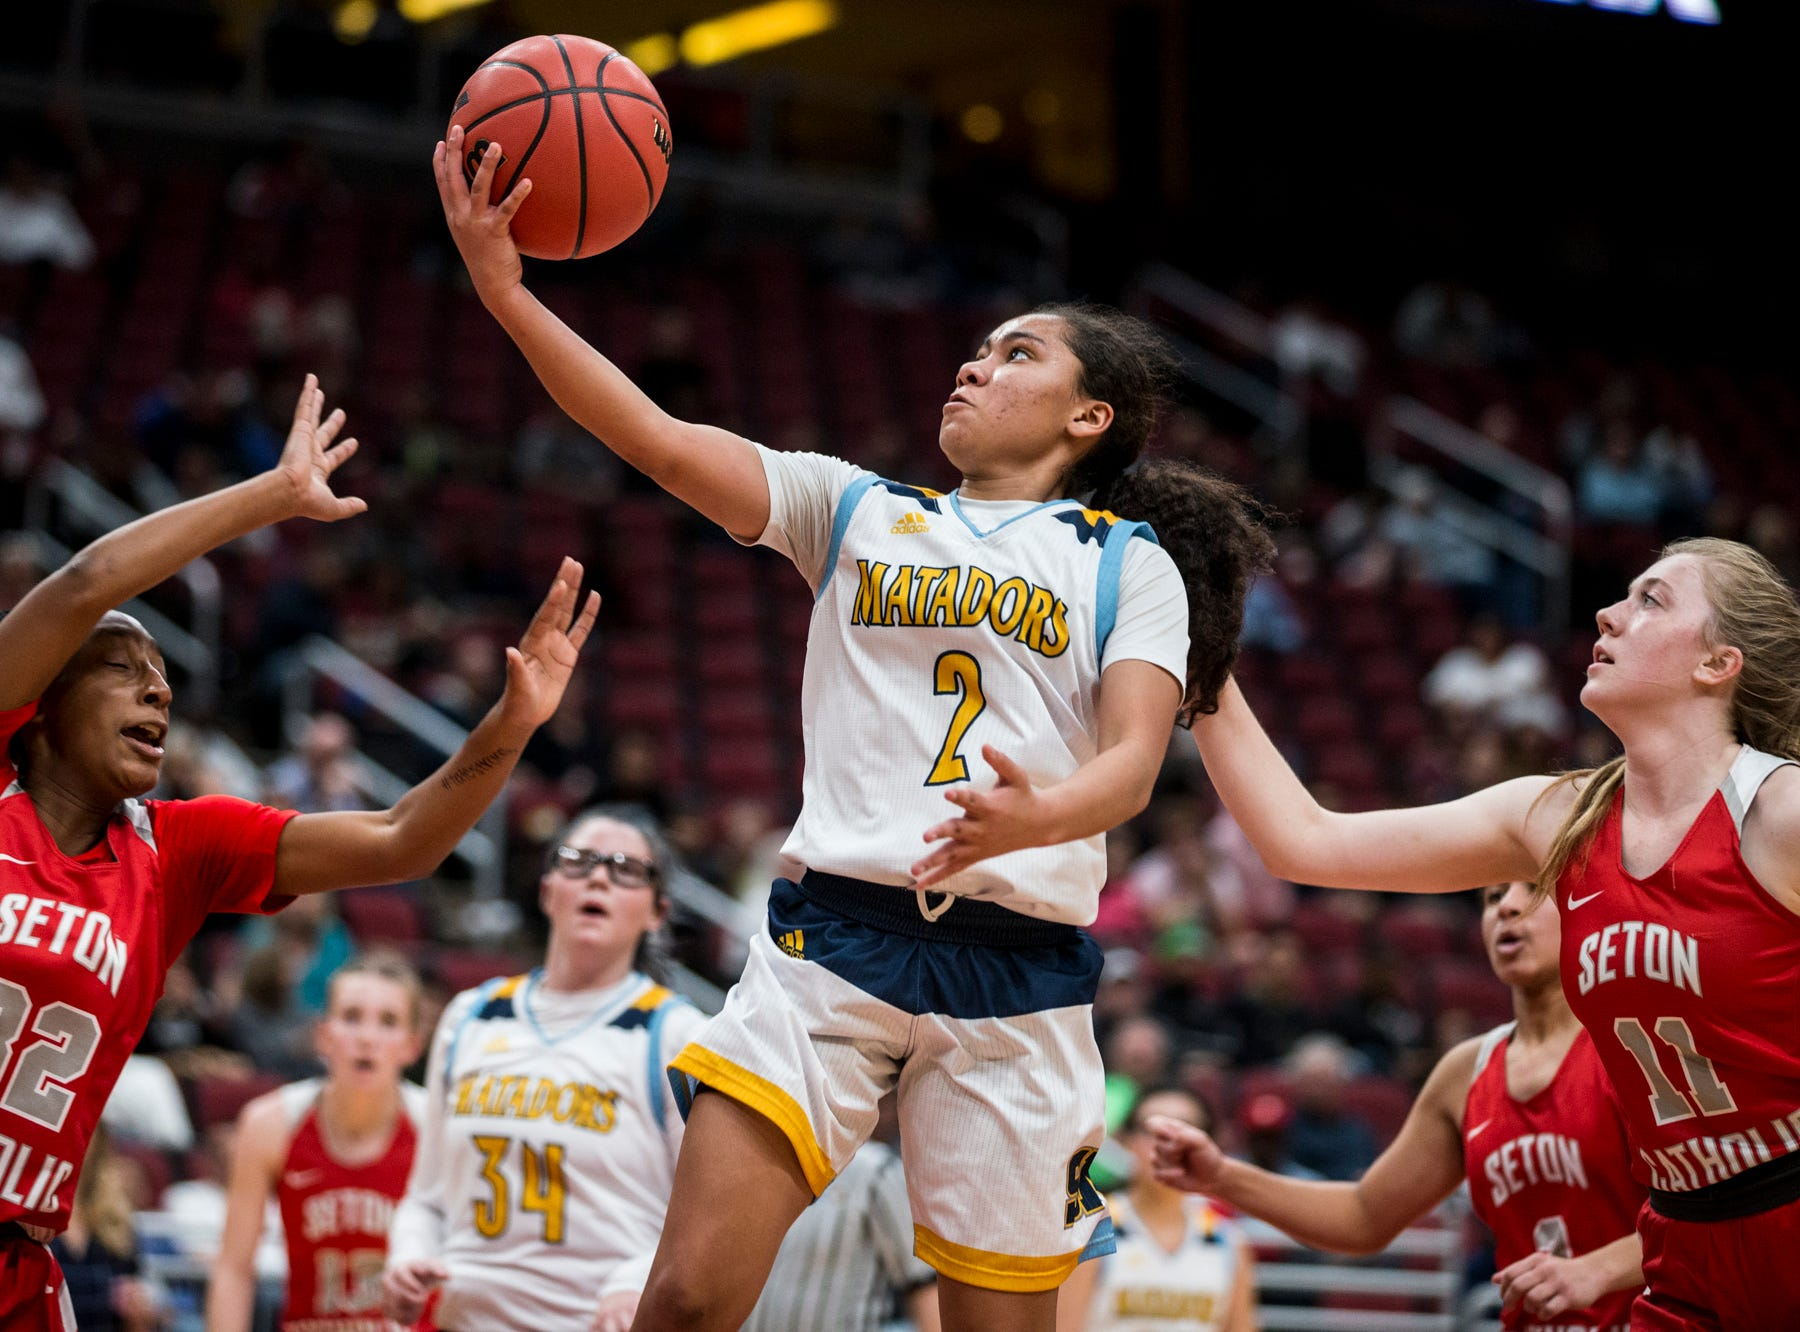 Shadow Mountain's Senya Rabouin attempts a layup against Seton Catholic during the 4A girls basketball championship on Saturday, Feb. 23, 2019, at Gila River Arena in Glendale, Ariz.